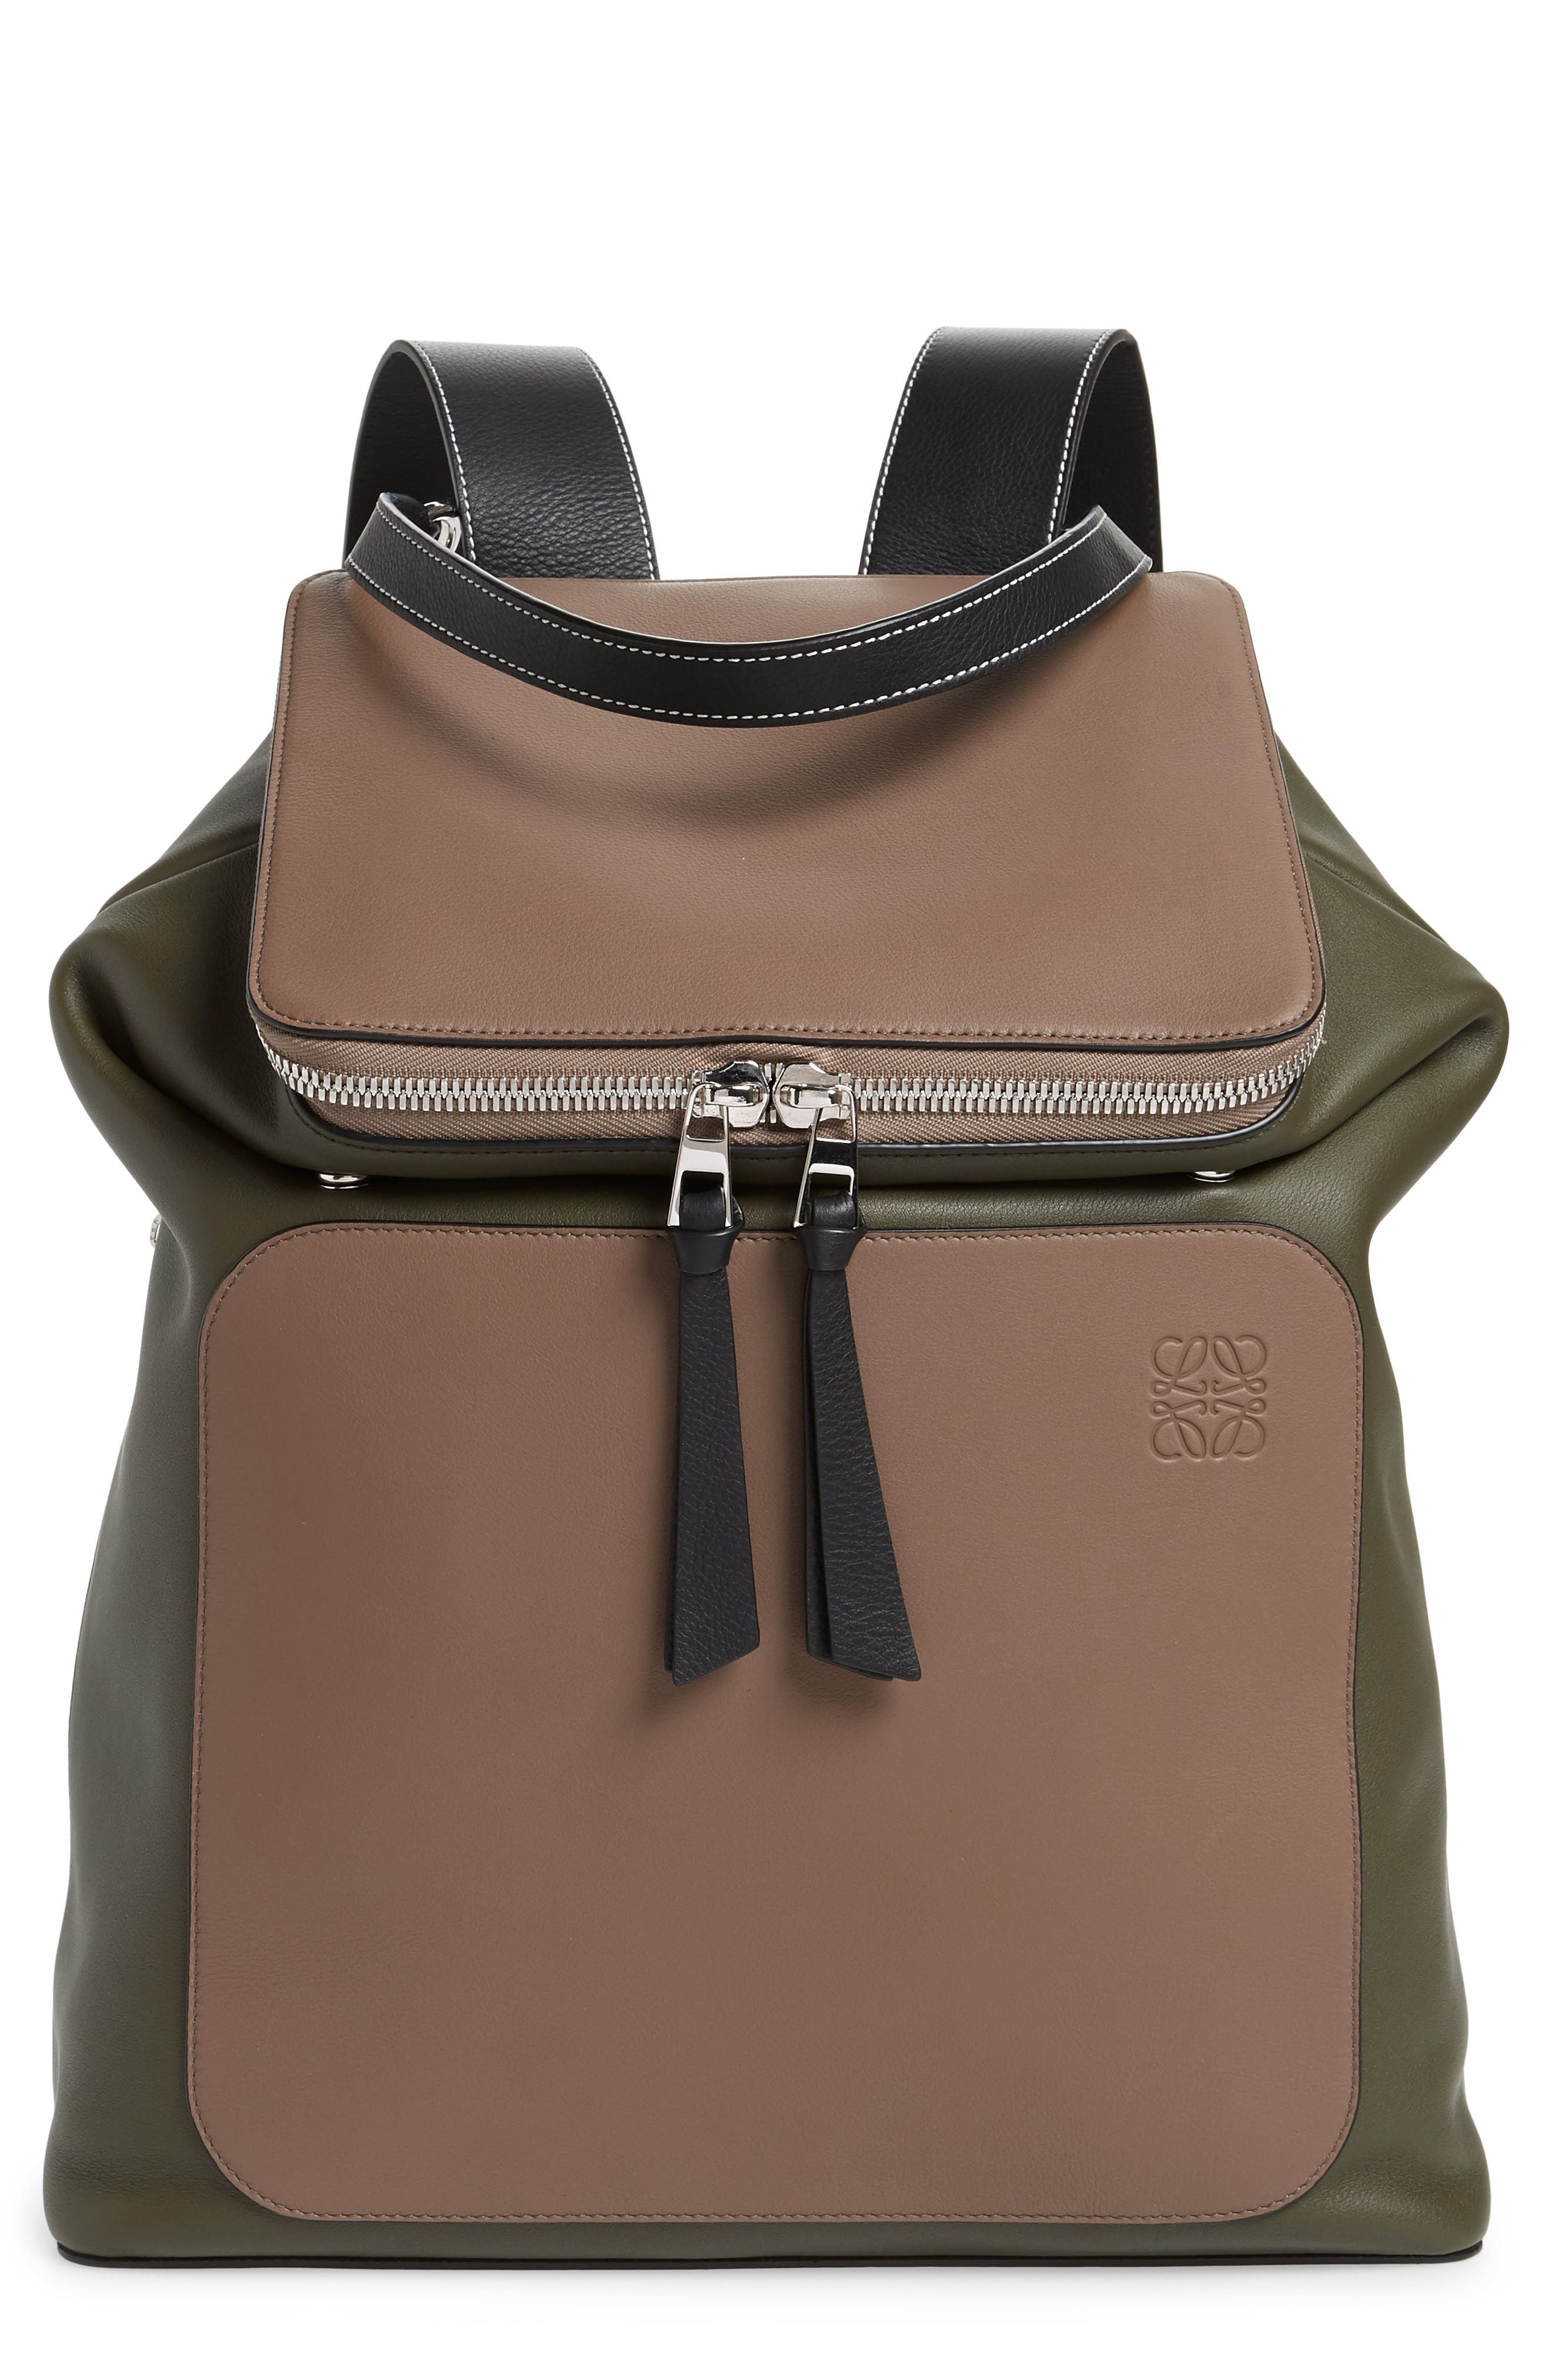 LOEWE Goya Backpack, Main, color, DARK TAUPE/ GREEN MILITARY